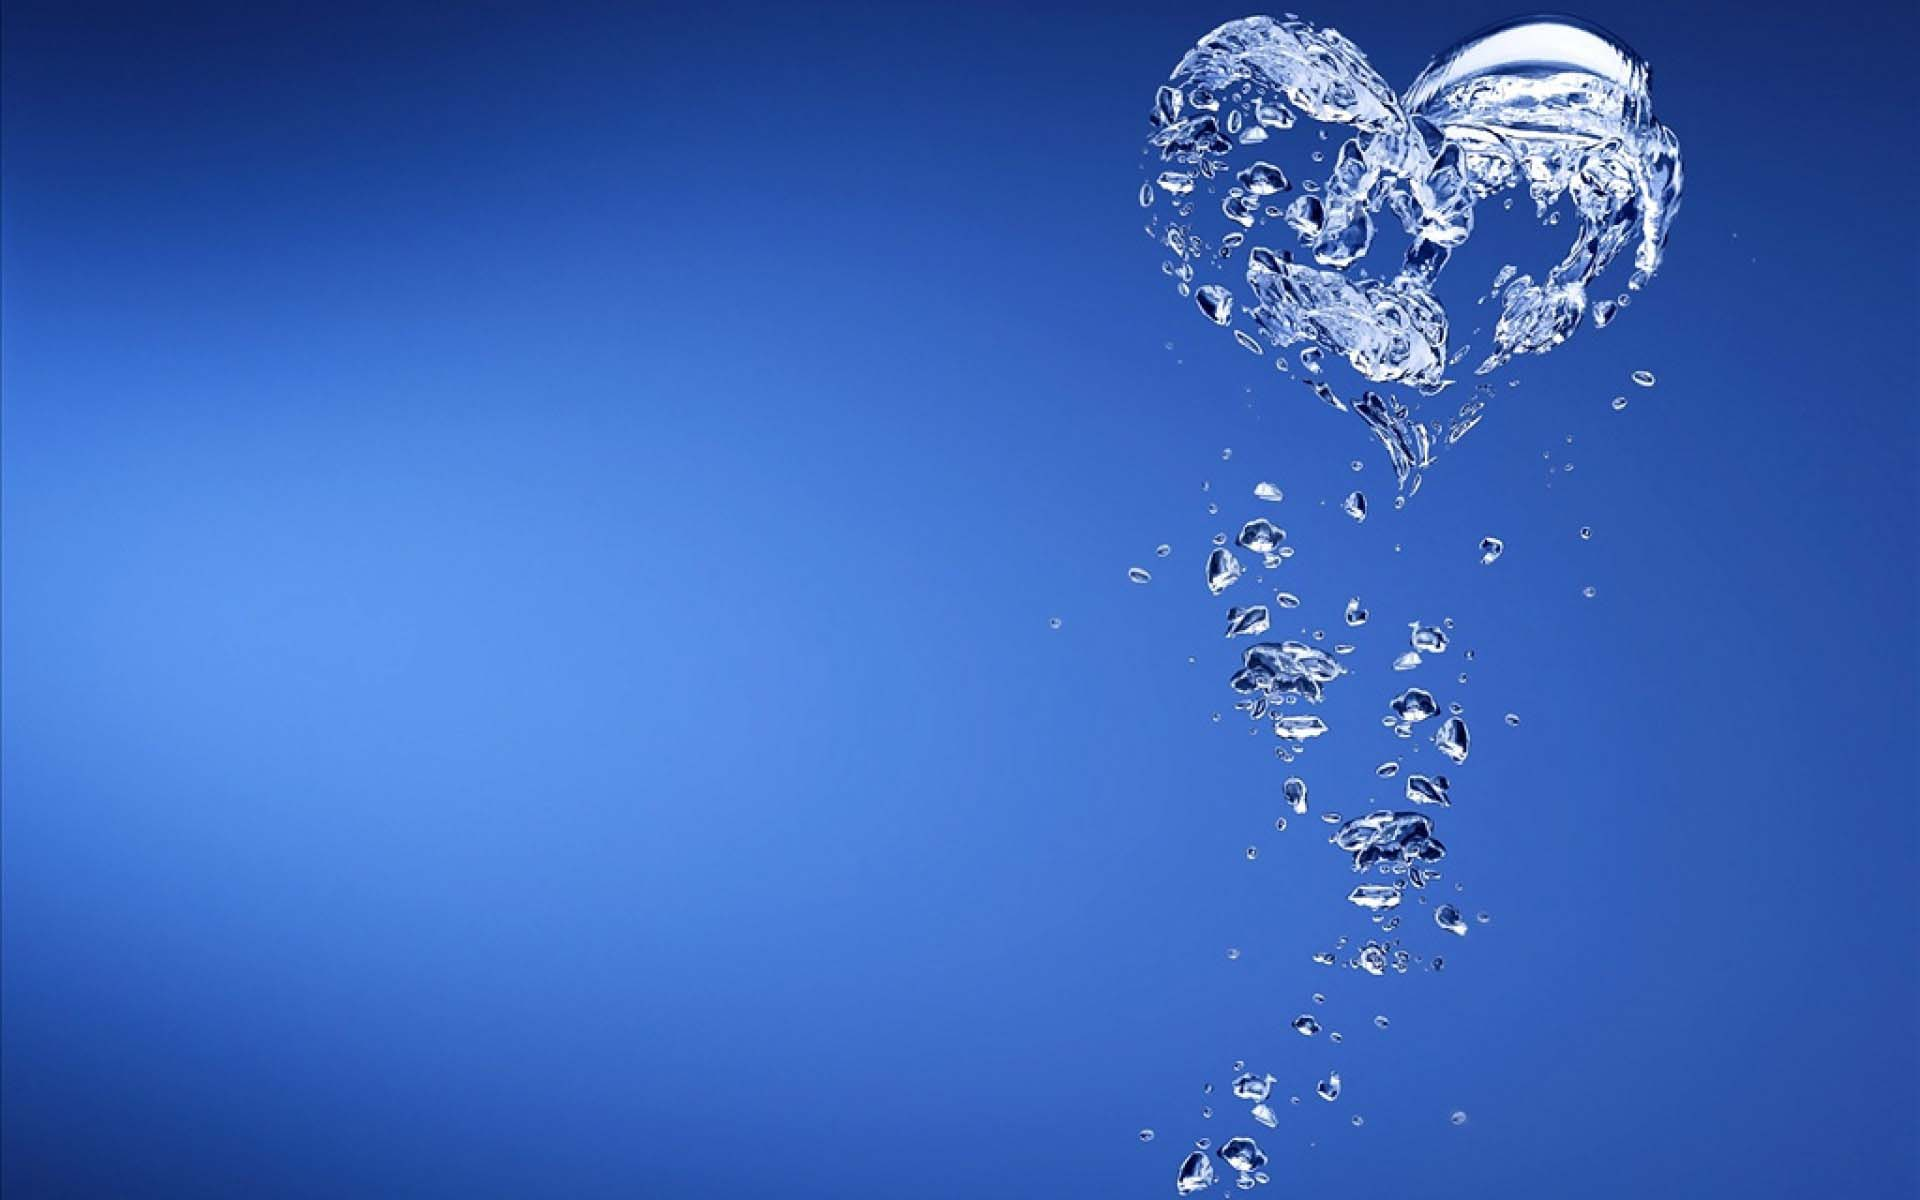 HD wallpapers iphone water bubble wallpaper